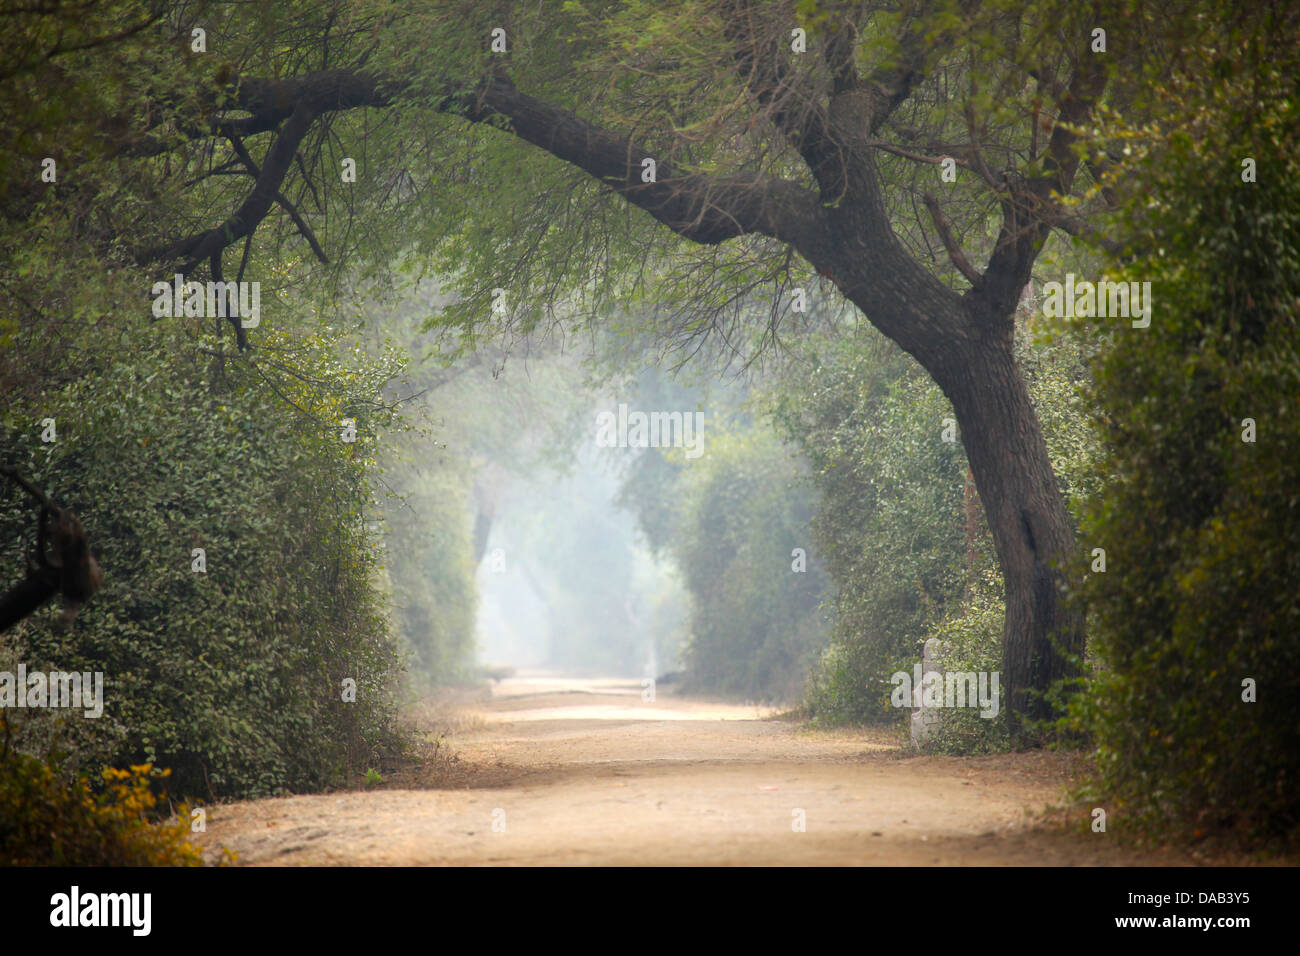 Away, tree, mystical, mysterious, fog, Keoladeo, national park, Bharatpur, India, Asia, Rajasthan, - Stock Image